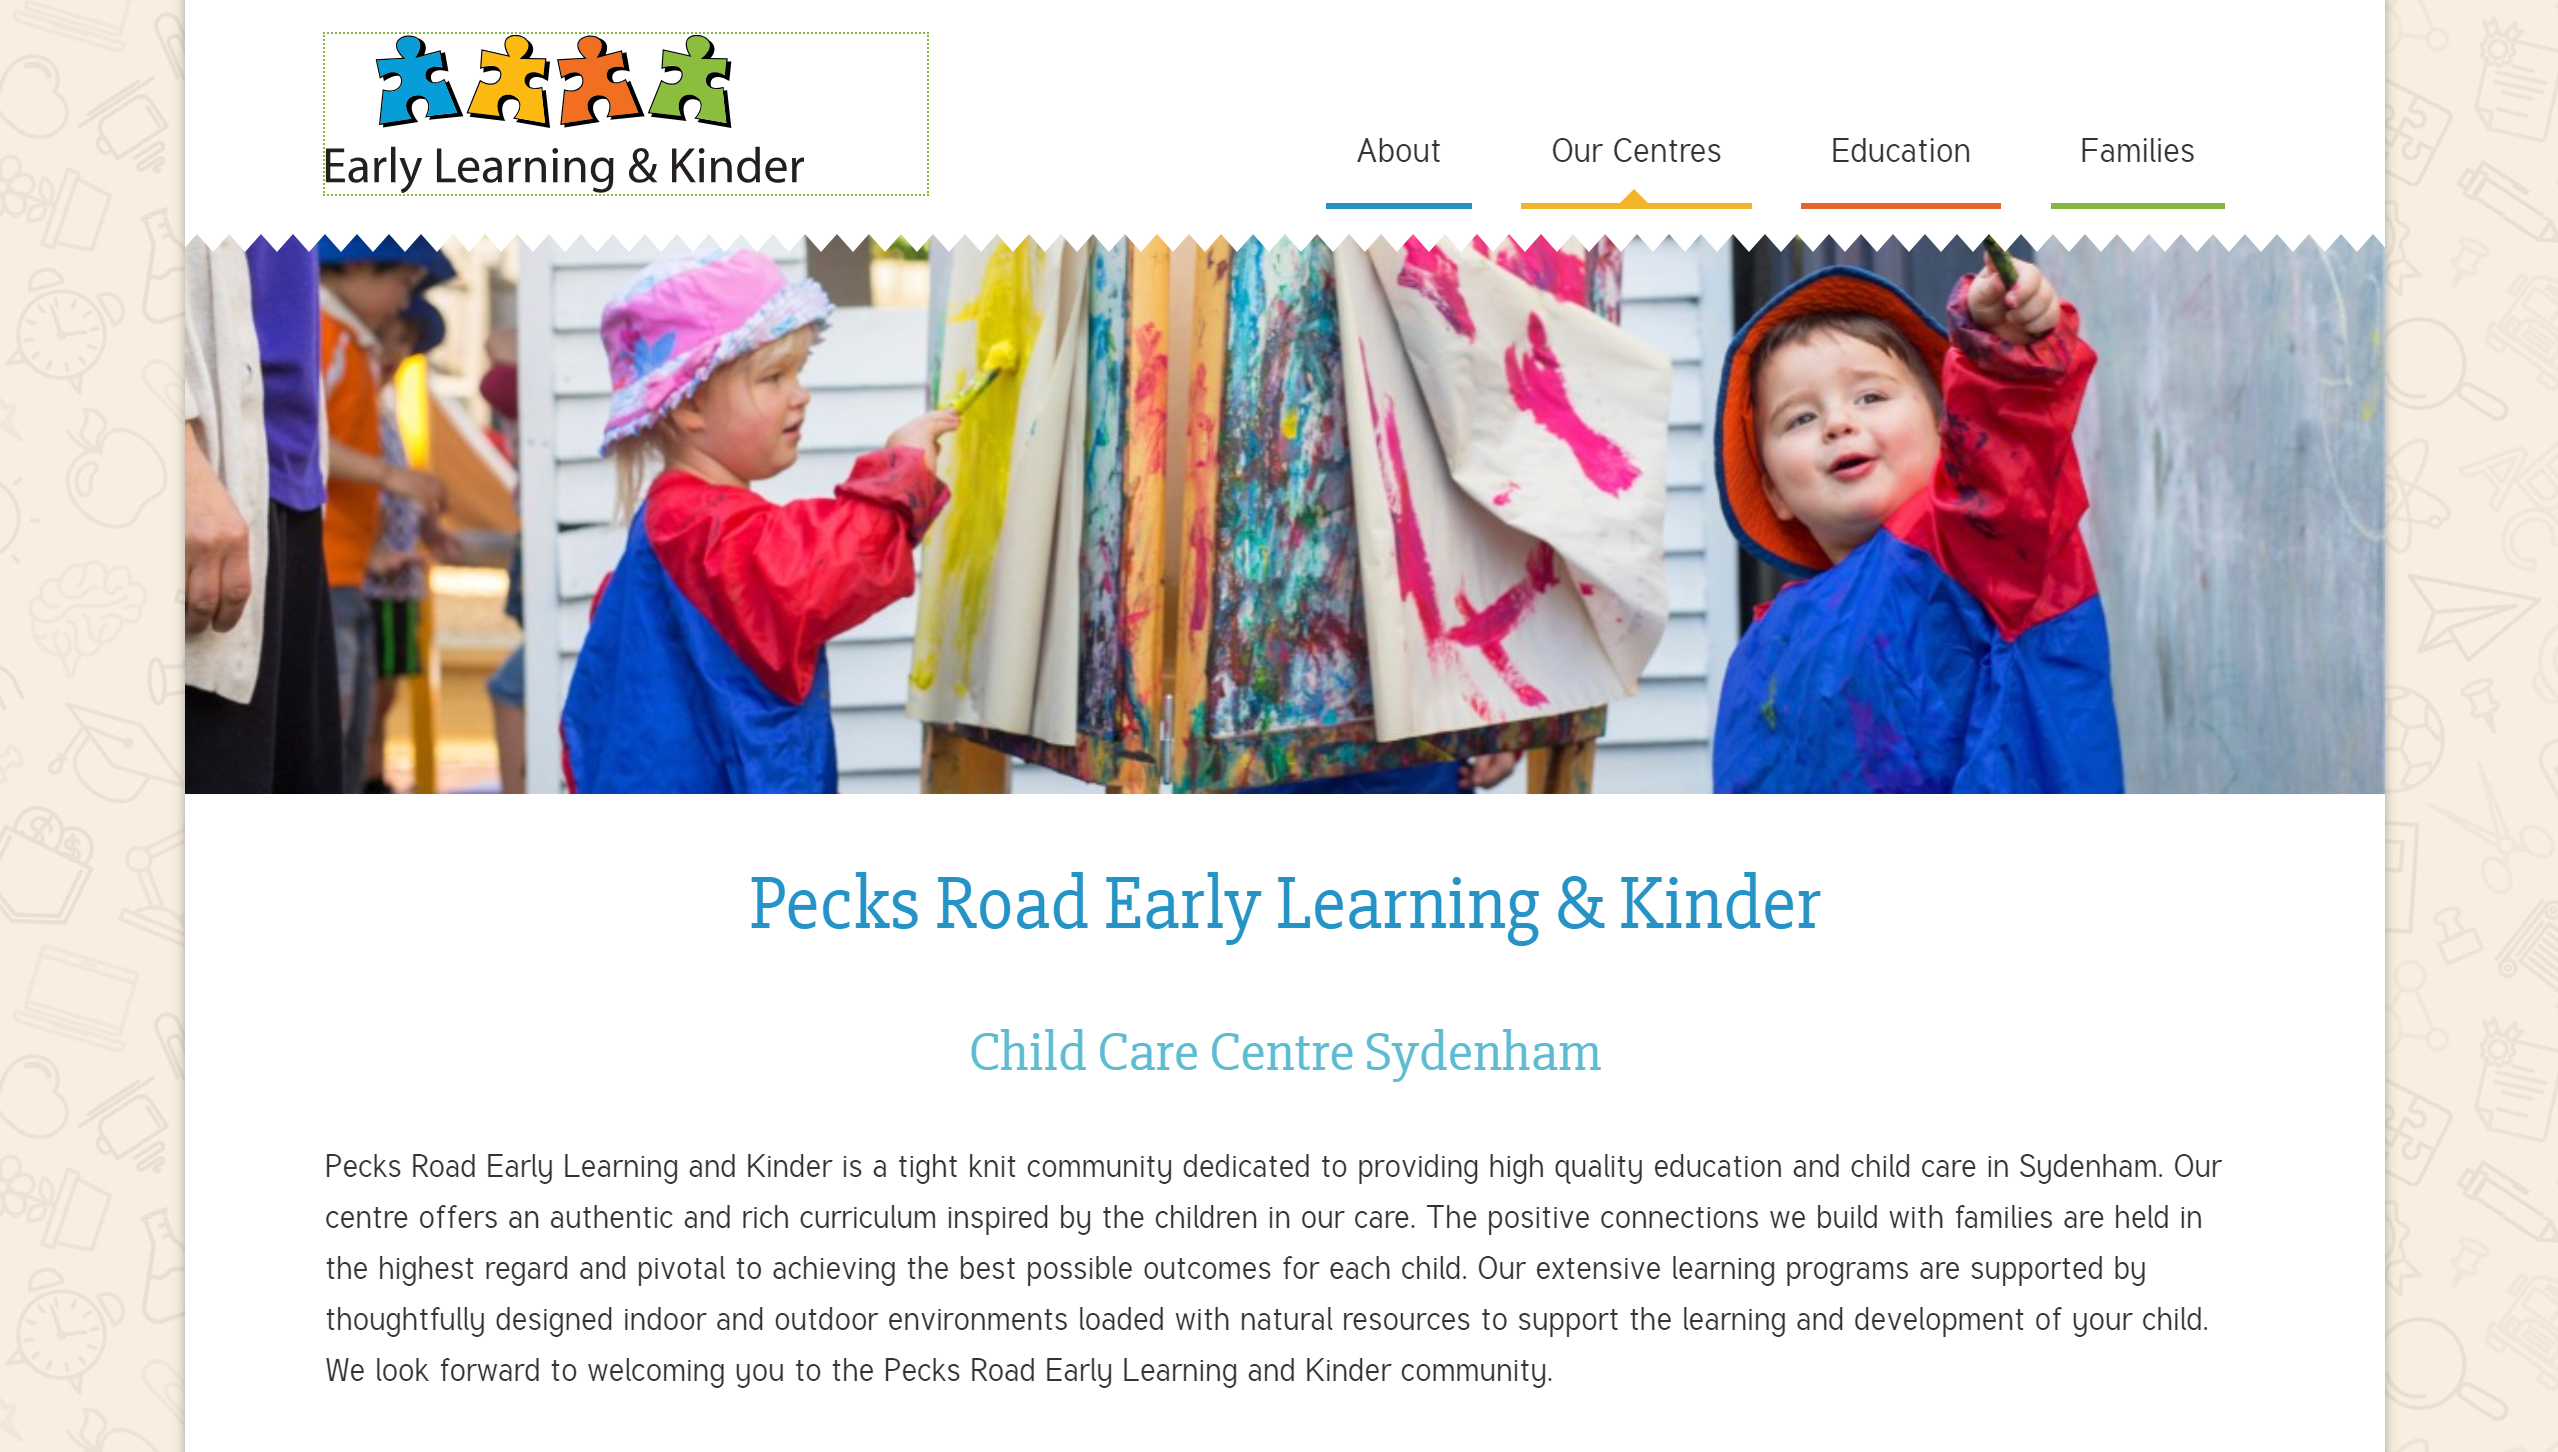 Early Learning & Kinder